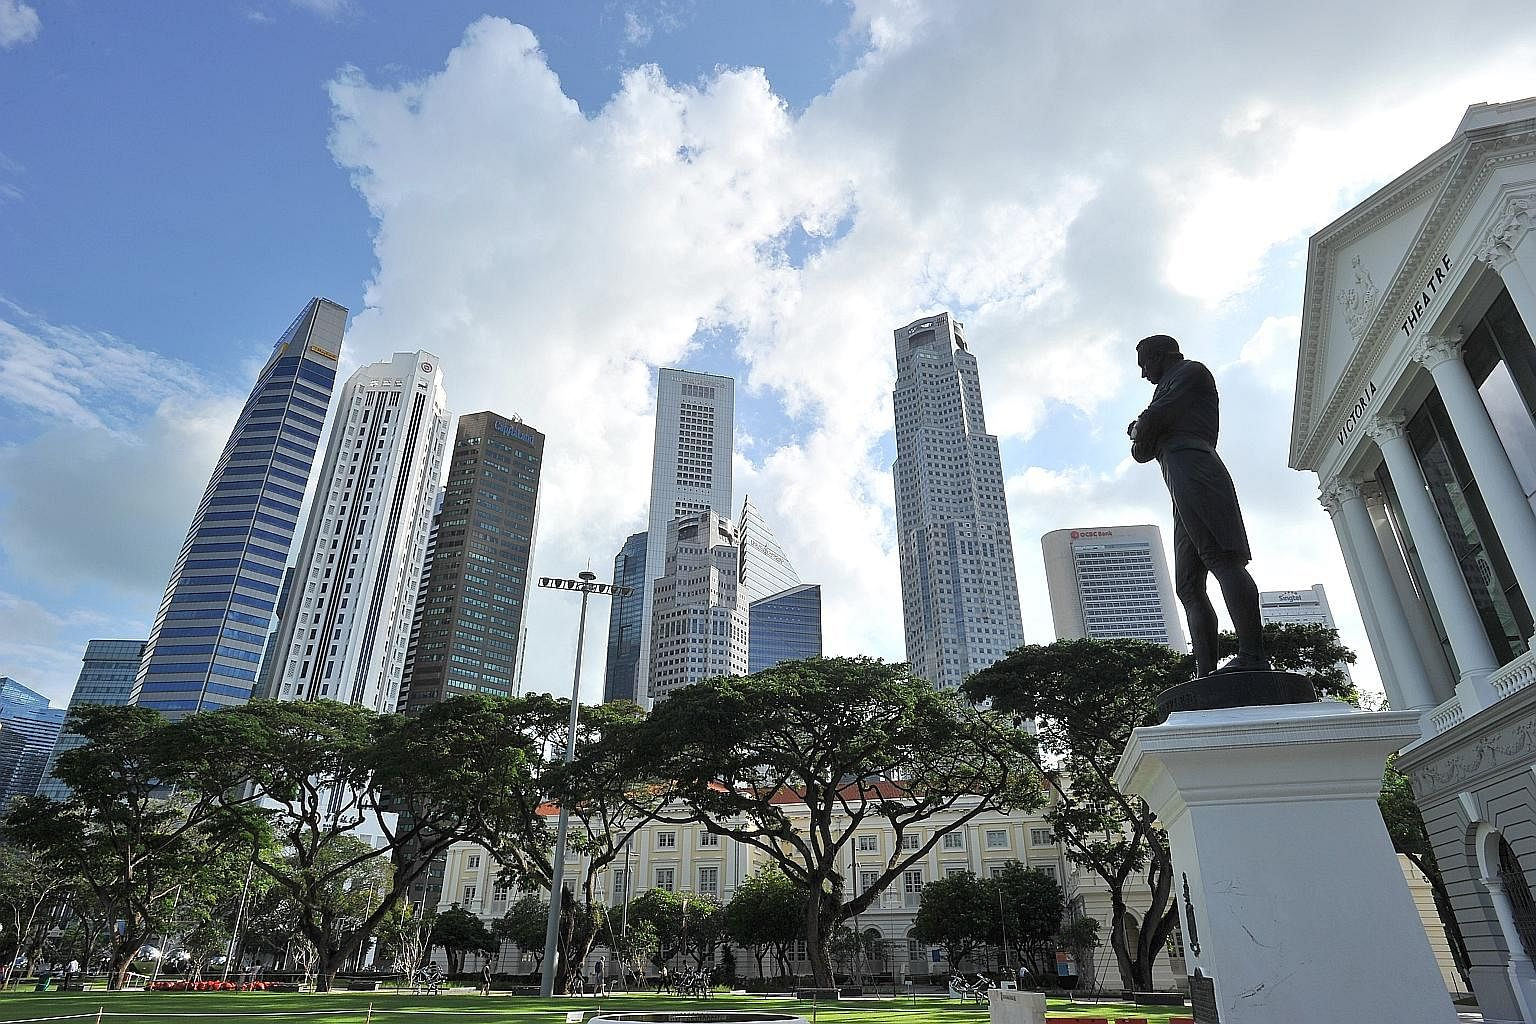 Stamford Raffles' statue outside Victoria Theatre & Victoria Concert Hall is a reminder of how his vision helped transform Singapore over 200 years. Singaporeans must now forge a new, equally ambitious vision for the next 200..